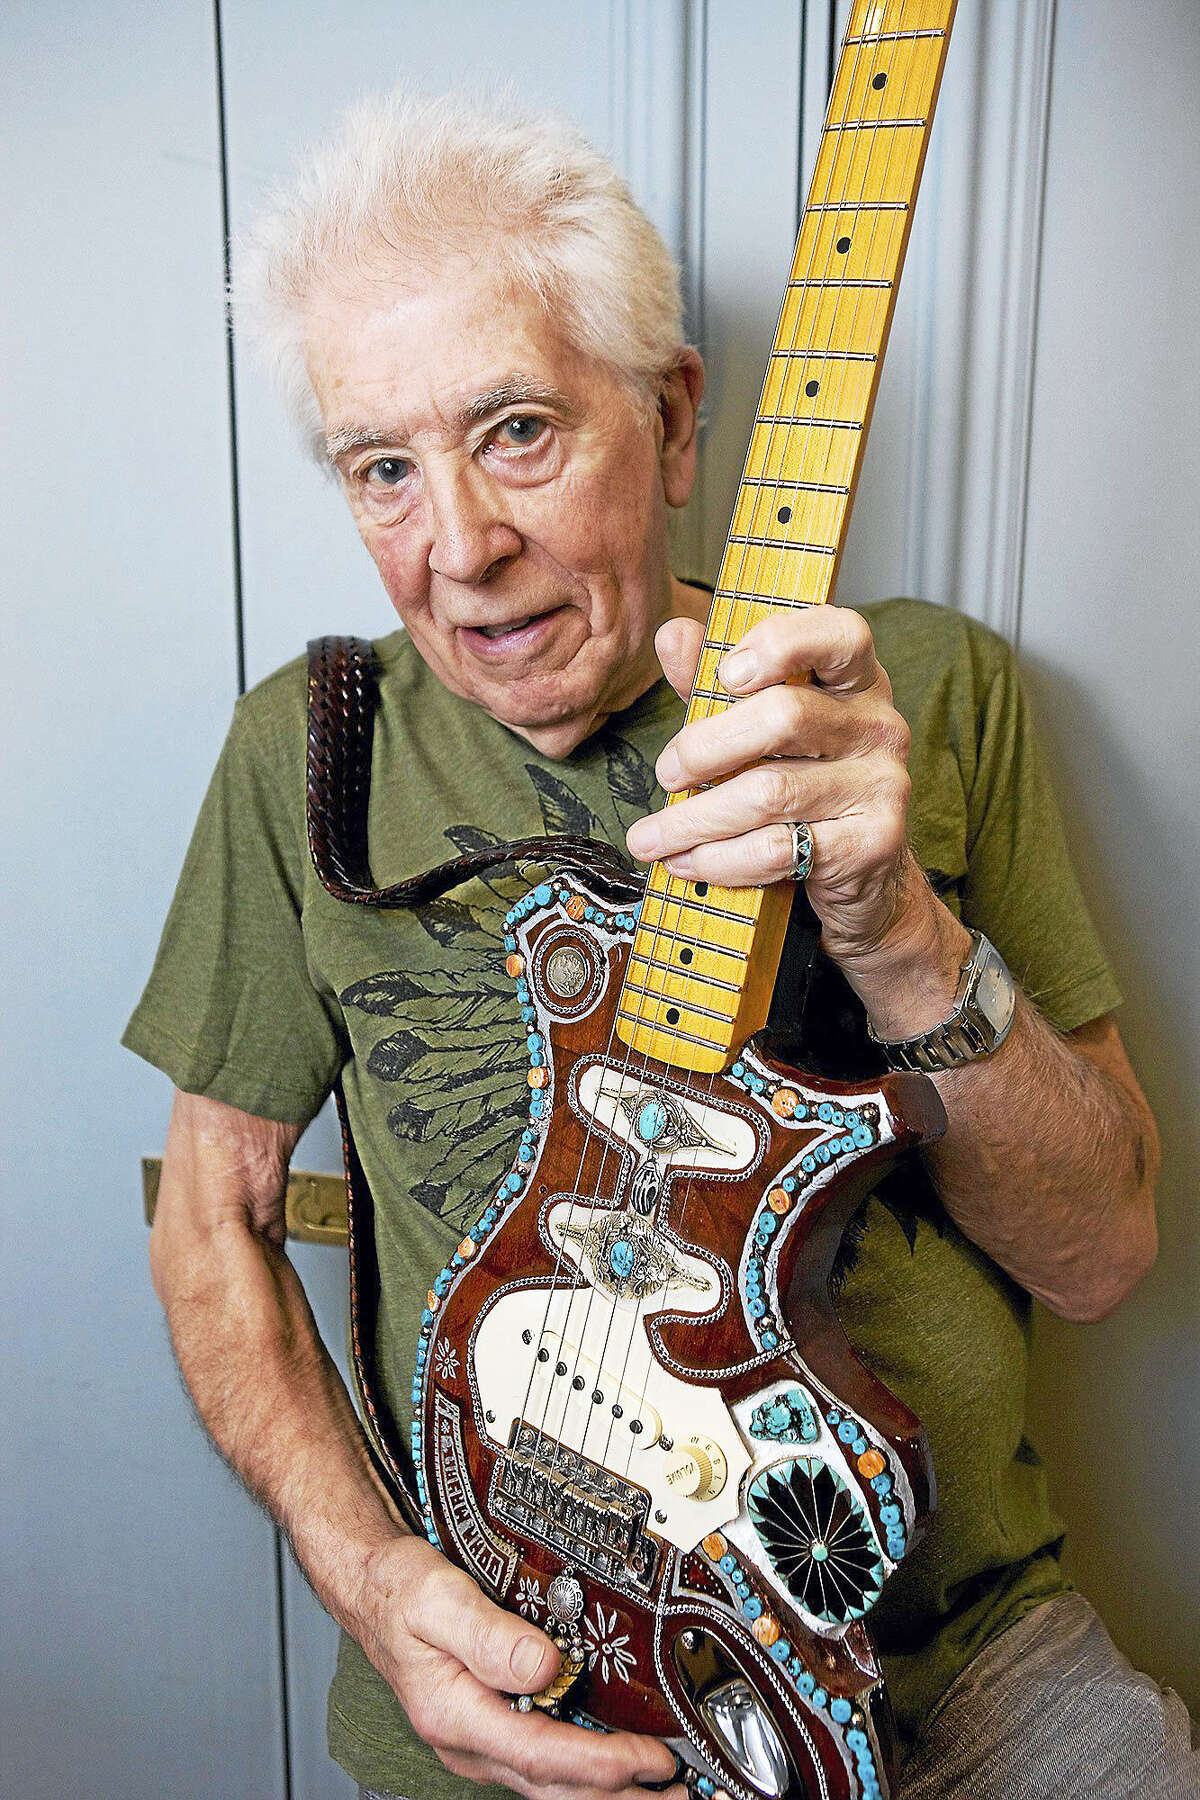 """""""The Godfather of British Blues,"""" musician John Mayall is set to perform in Connecticut next week. On Thursday, June 1, he will appear at the Katharine Hepburn Cultural Arts Center in Old Saybrook and then on Saturday June 3 he will perform at the Infinity Music Hall in Norfolk."""